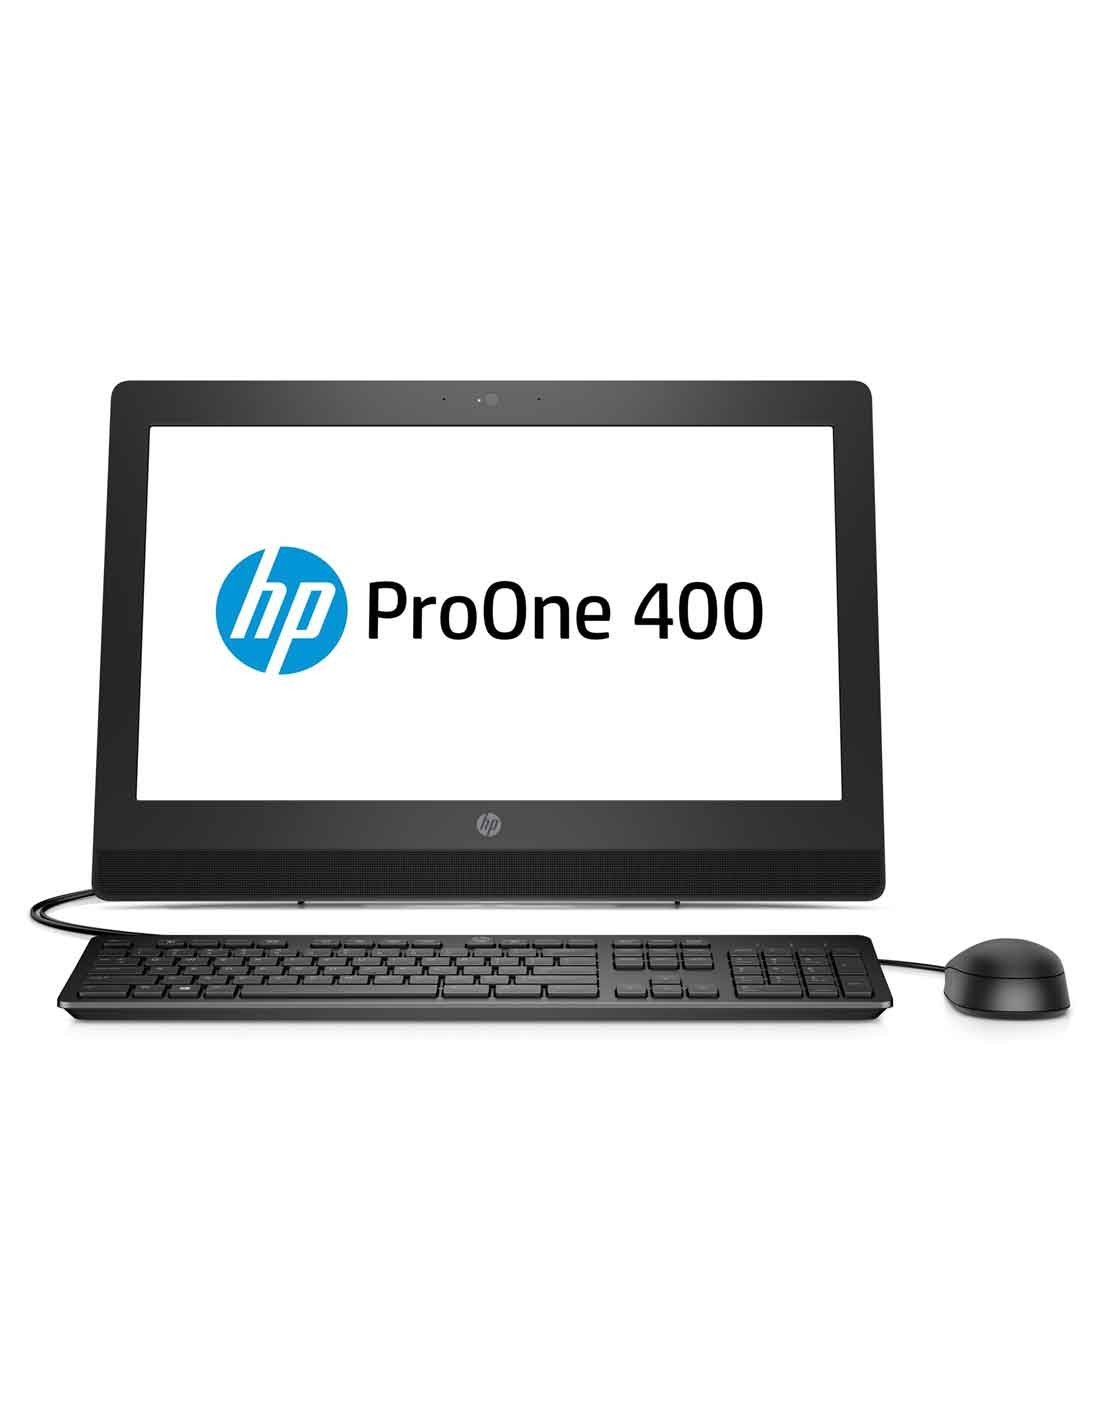 HP ProOne 400 G3 Touch All-in-One images